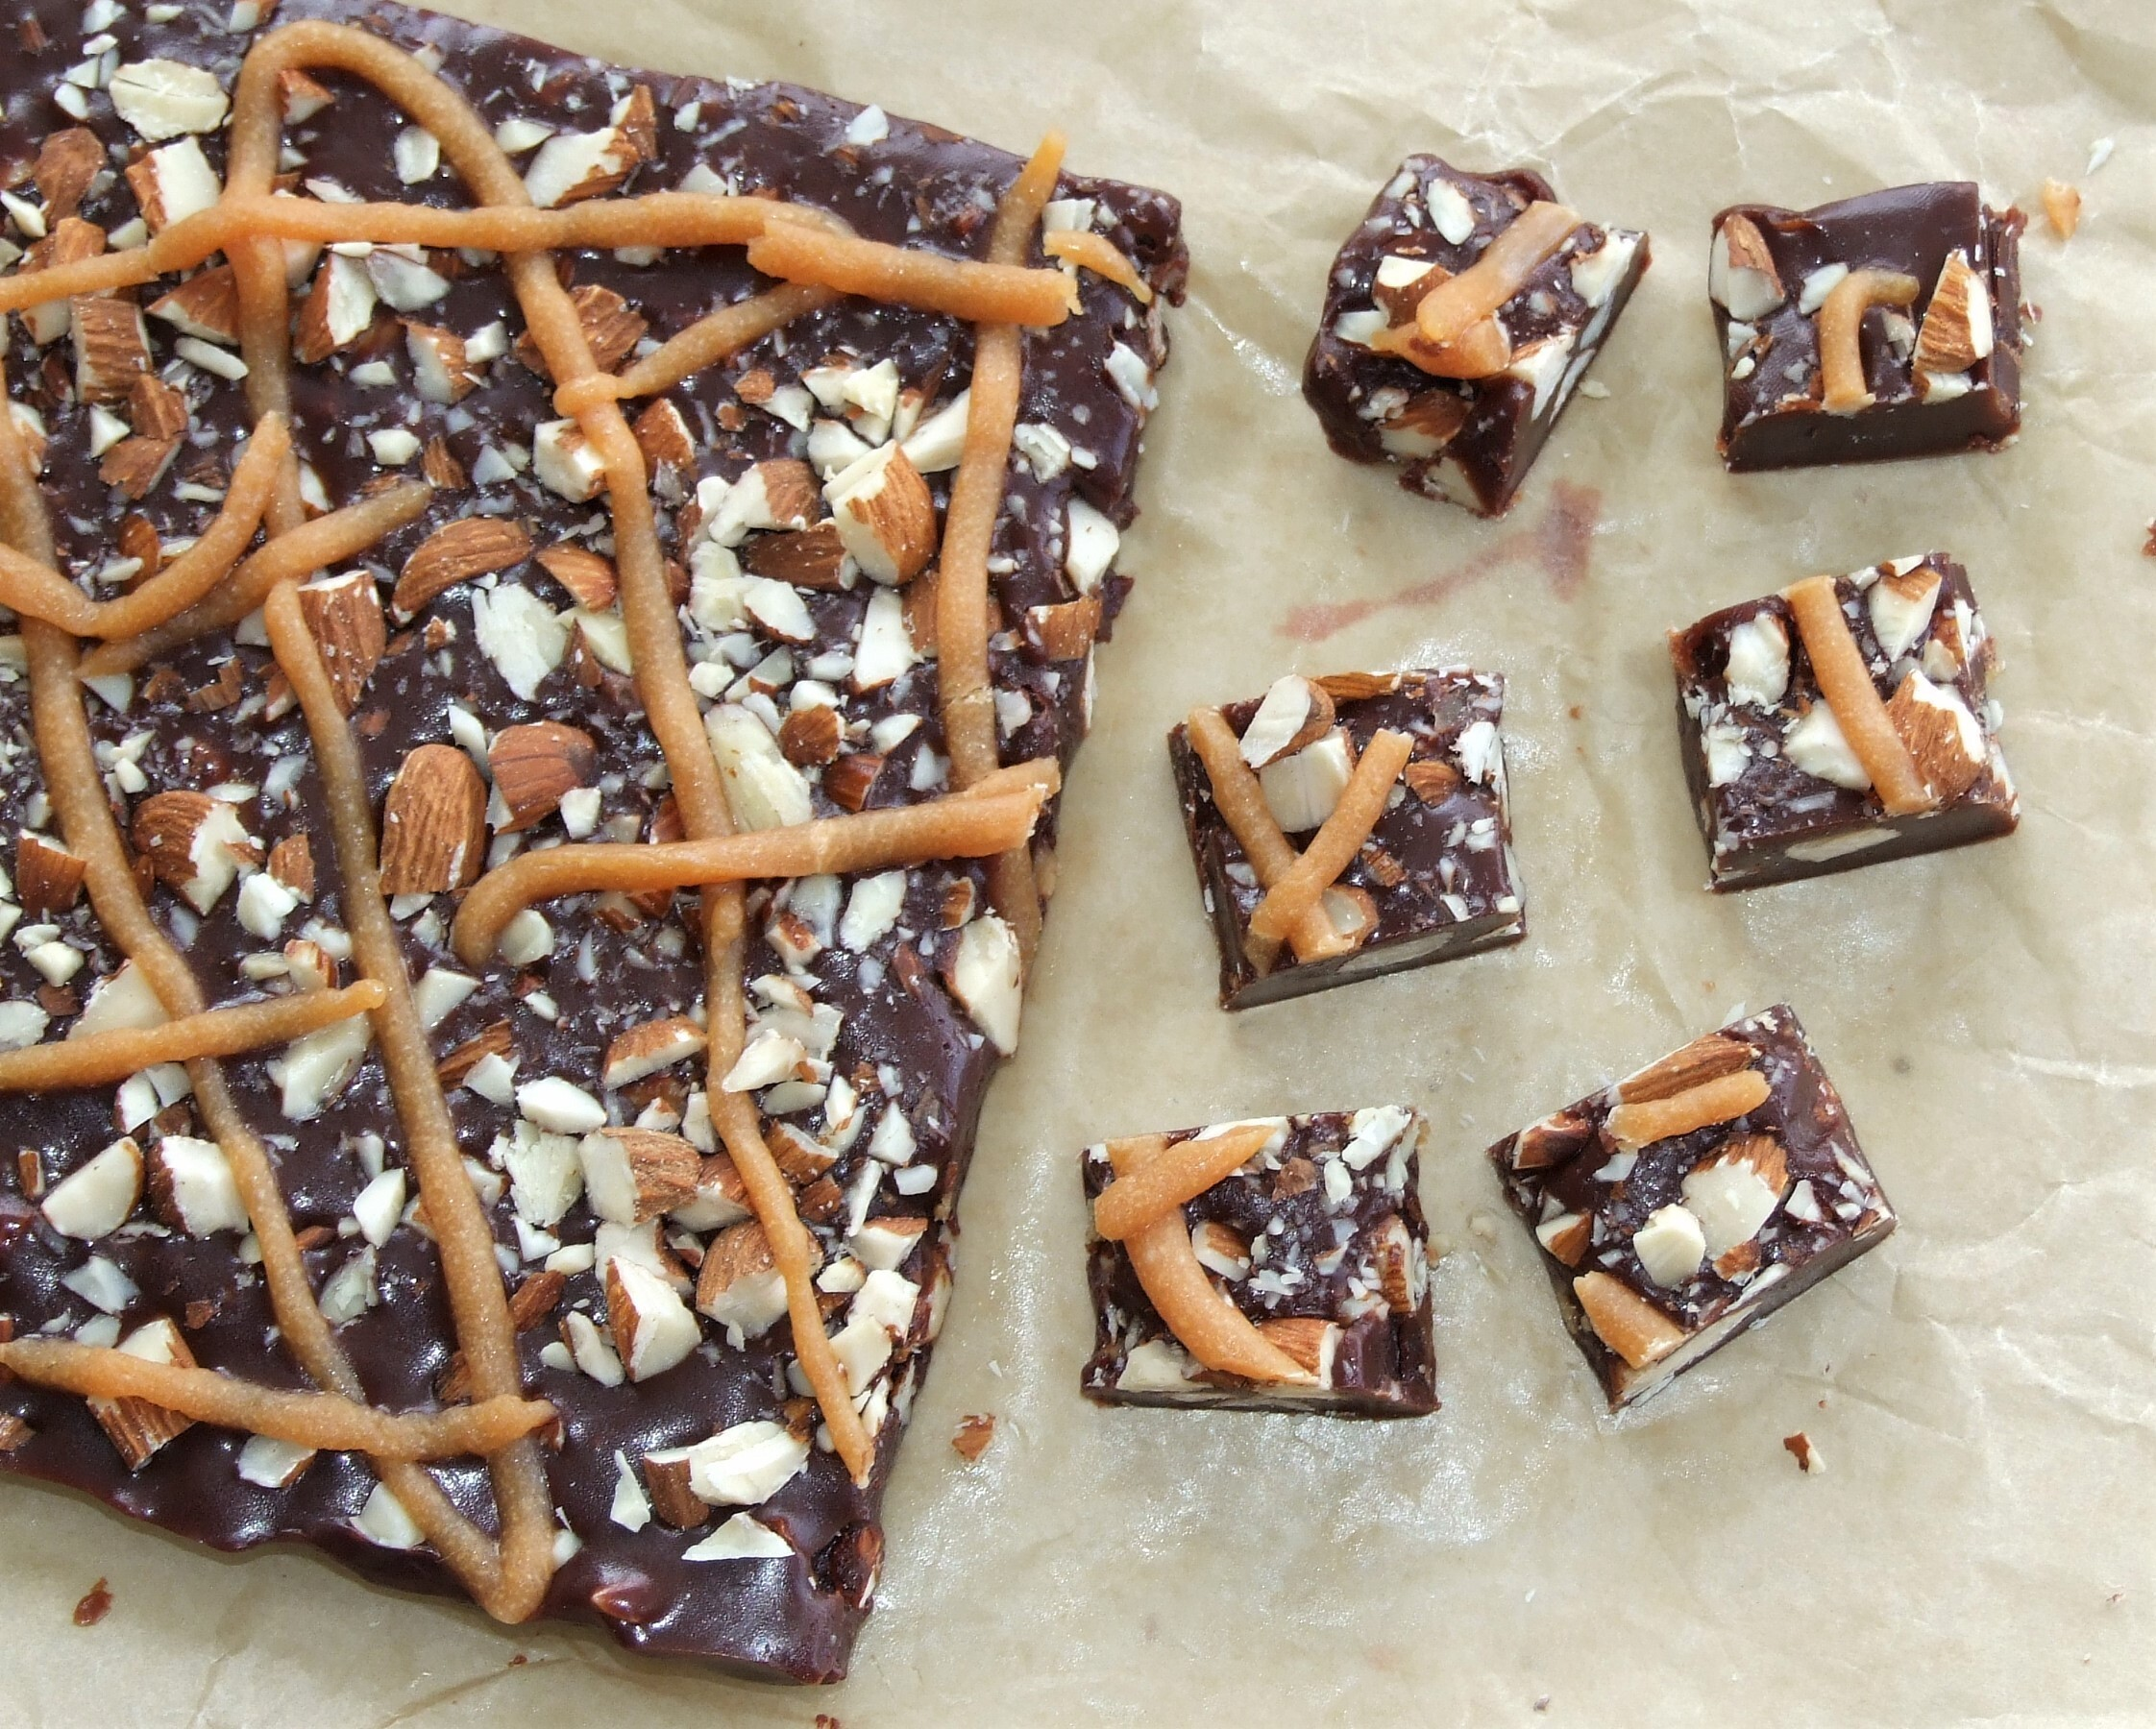 LCHF rocky road fudge!